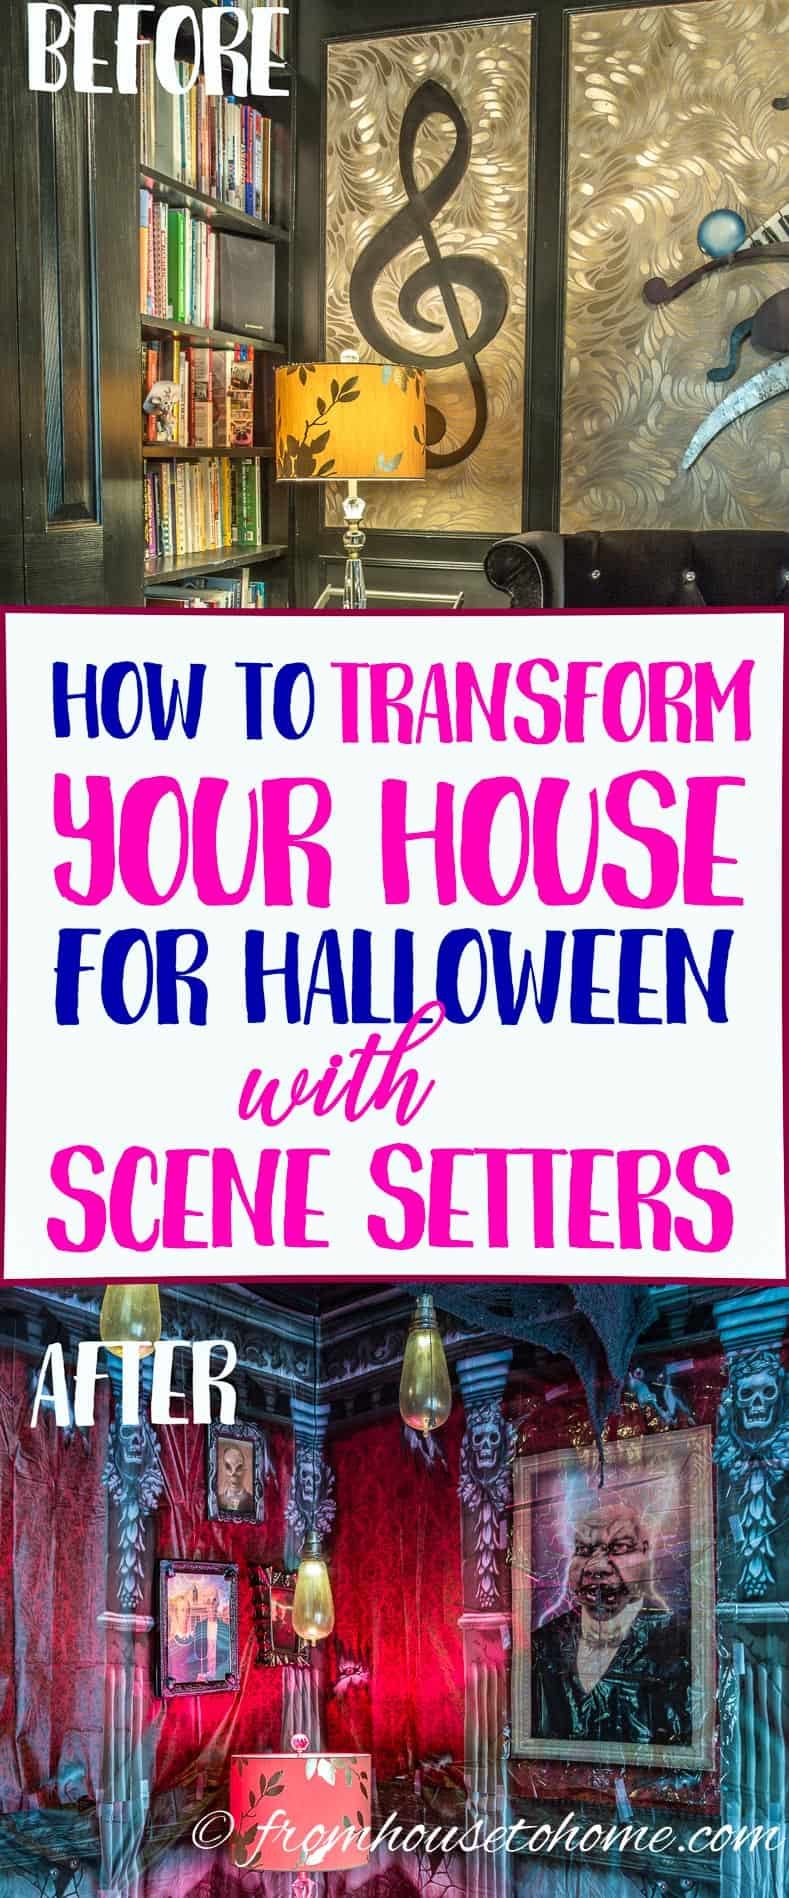 How To Transform Your House For Halloween With Scene Setters